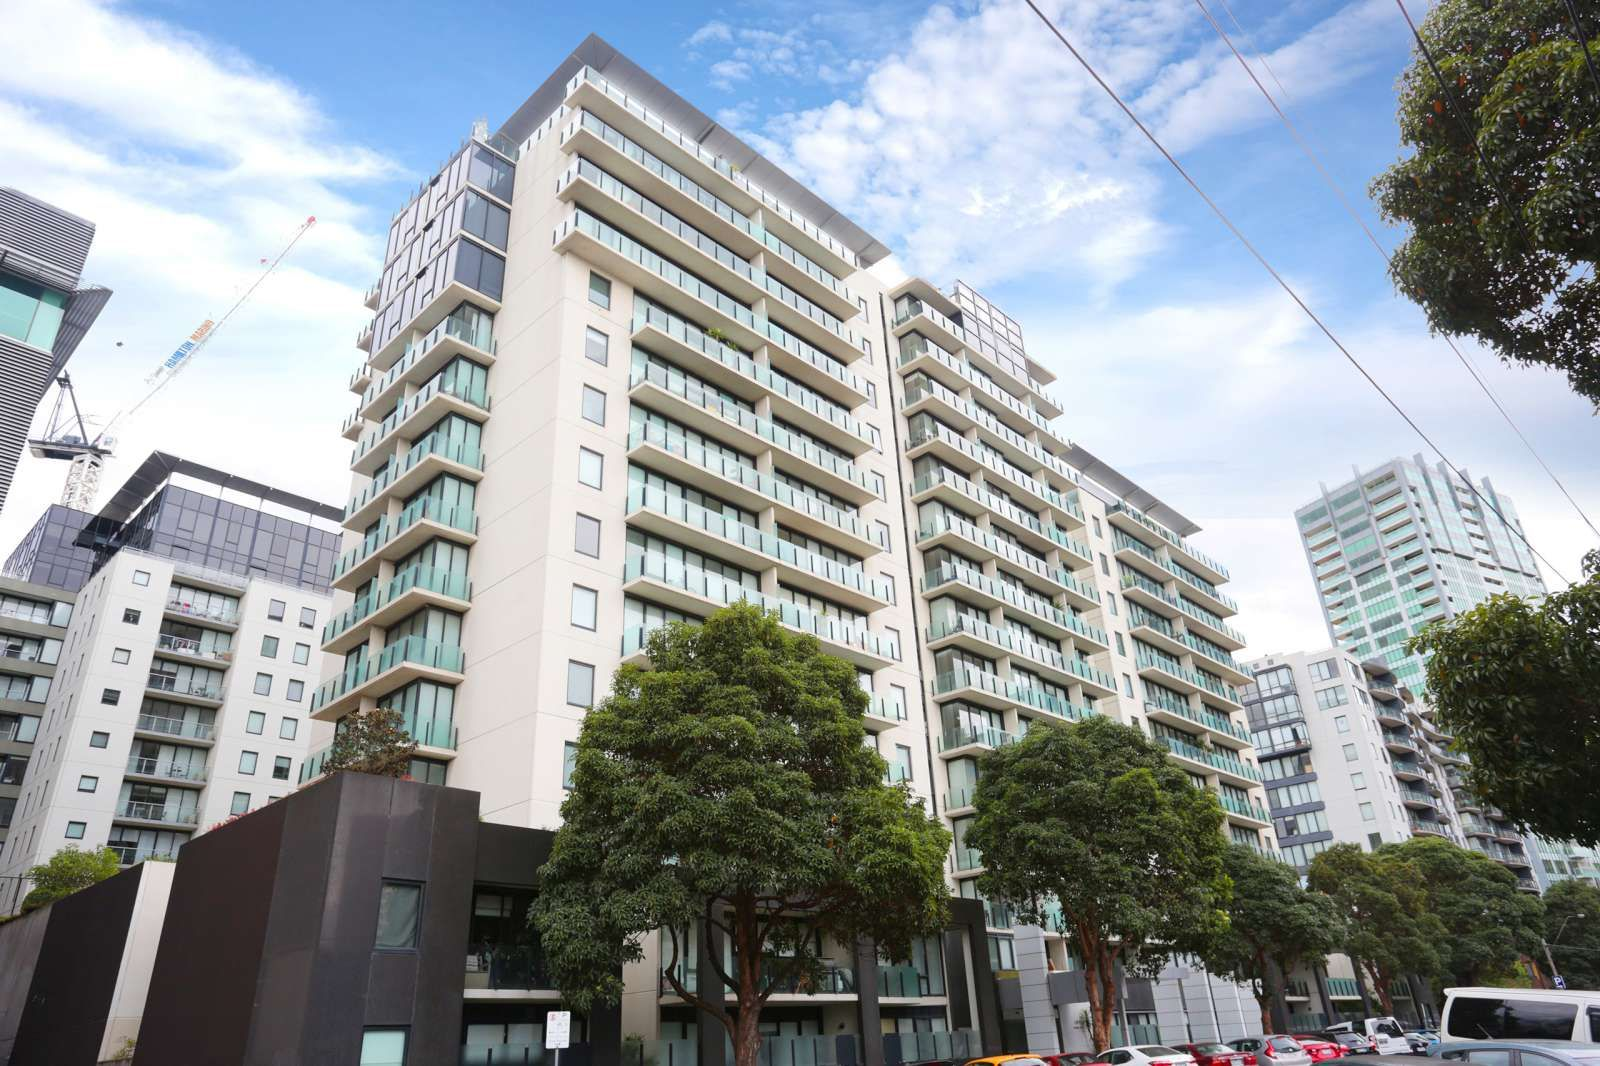 609/38 Bank Street, South Melbourne VIC 3205, Image 4